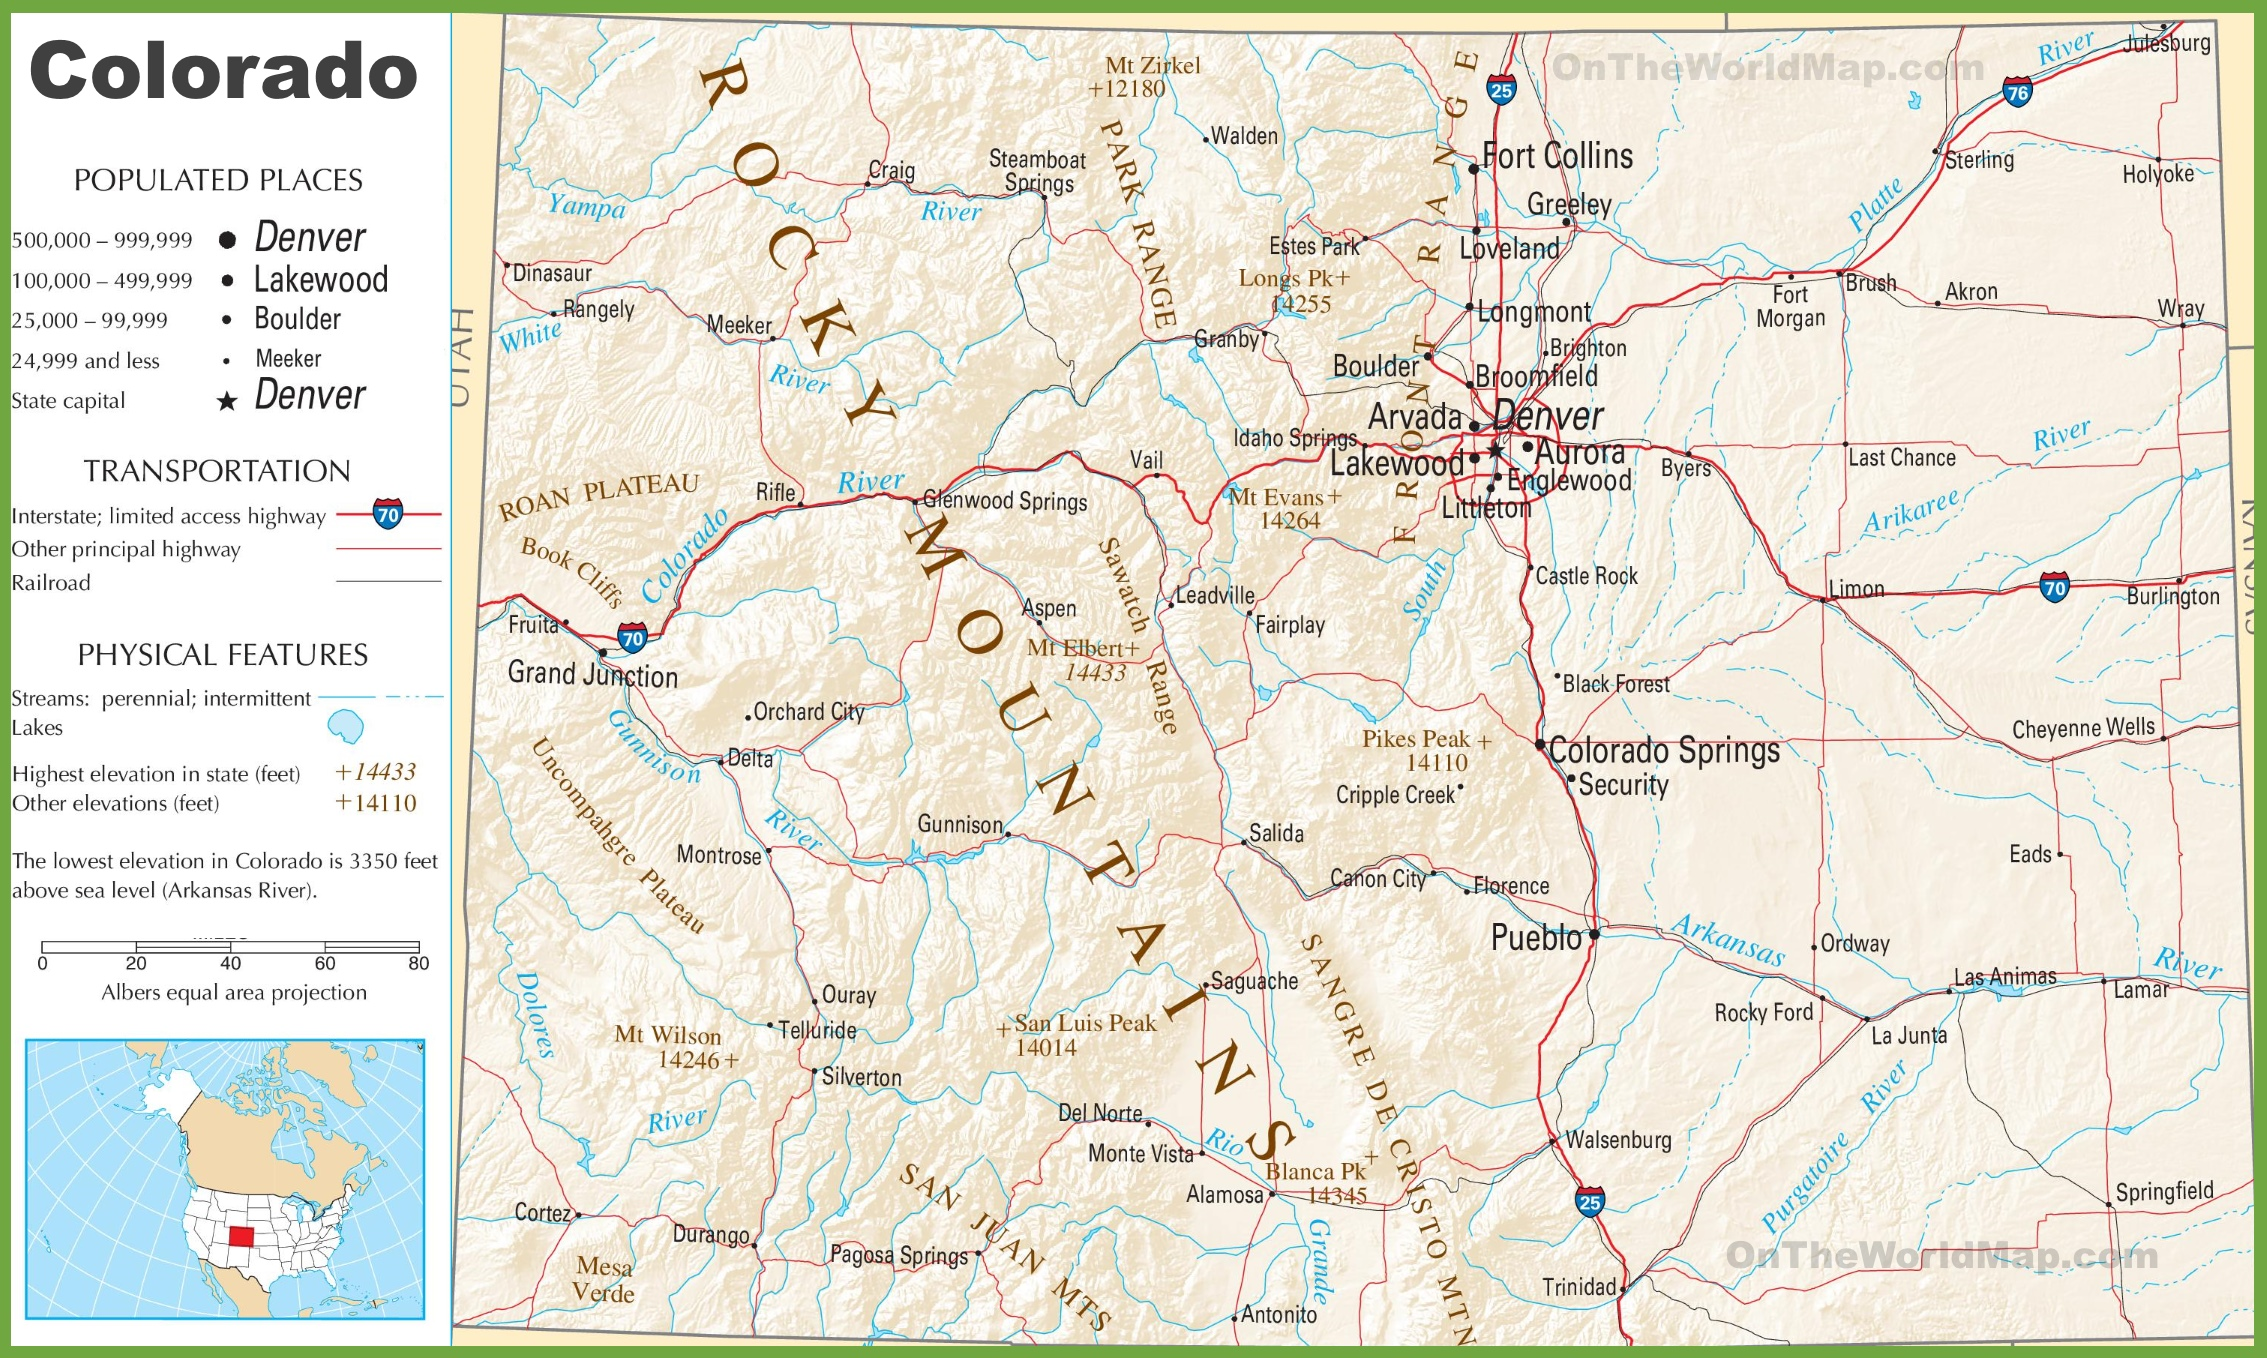 Colorado Highway Map - Map of colorado ski resorts and cities